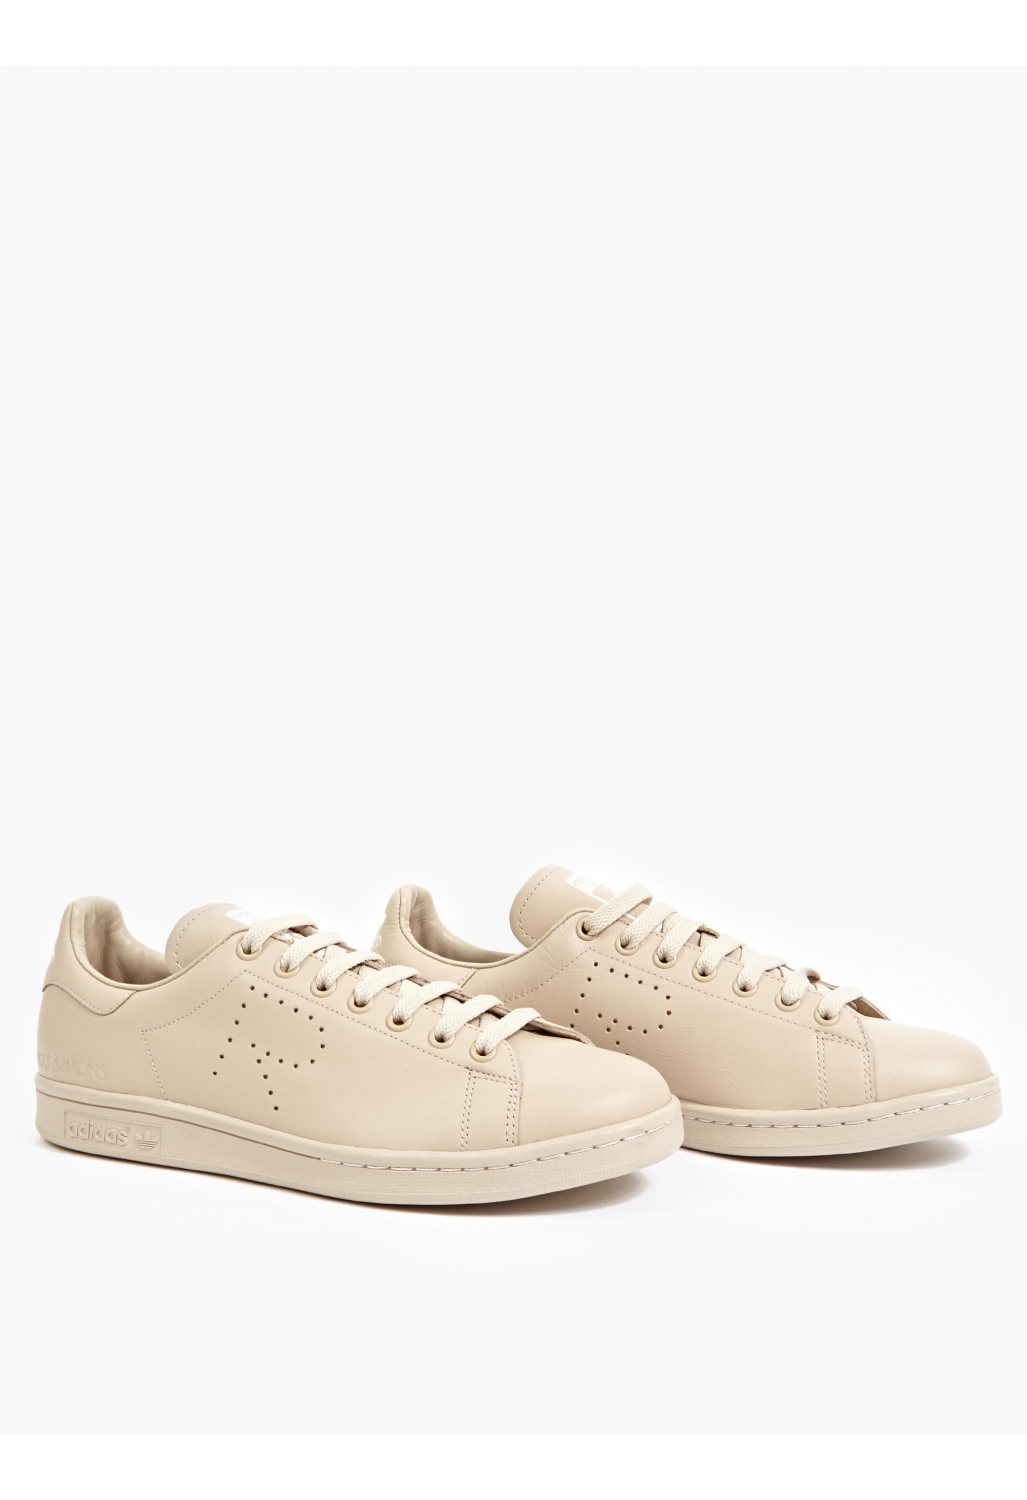 exzacsbu online stan smith adidas beige. Black Bedroom Furniture Sets. Home Design Ideas